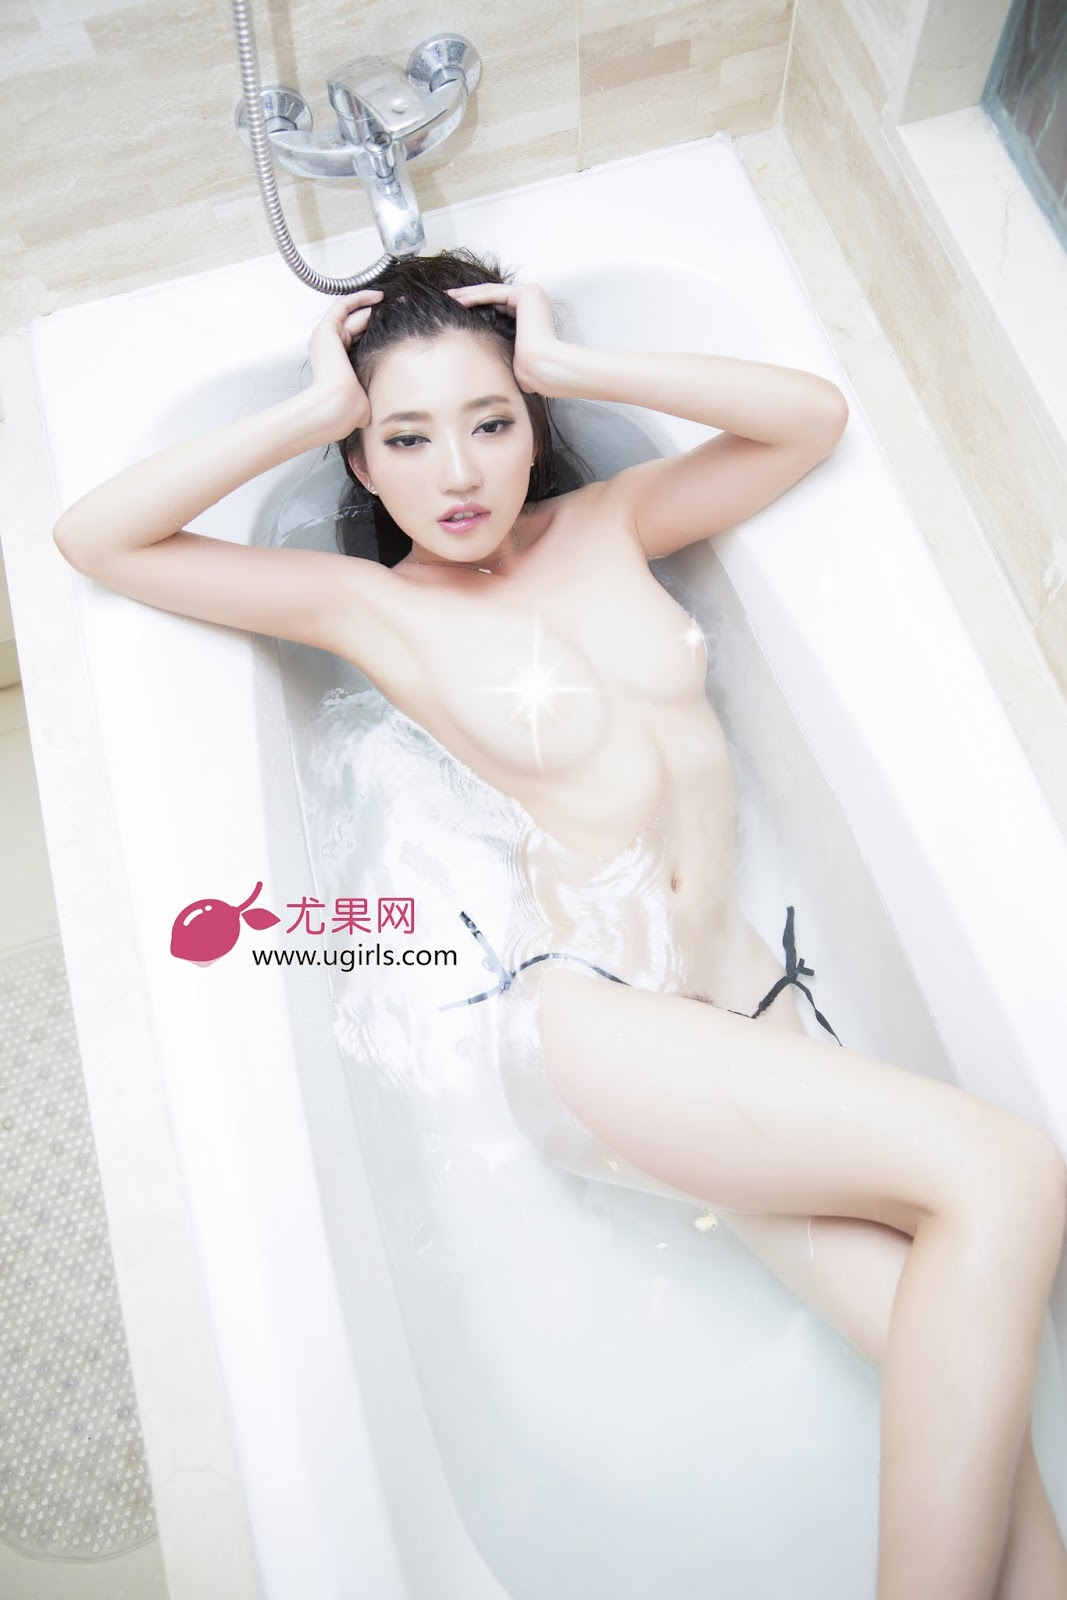 A14A5676 - Hot Model UGIRLS NO.8